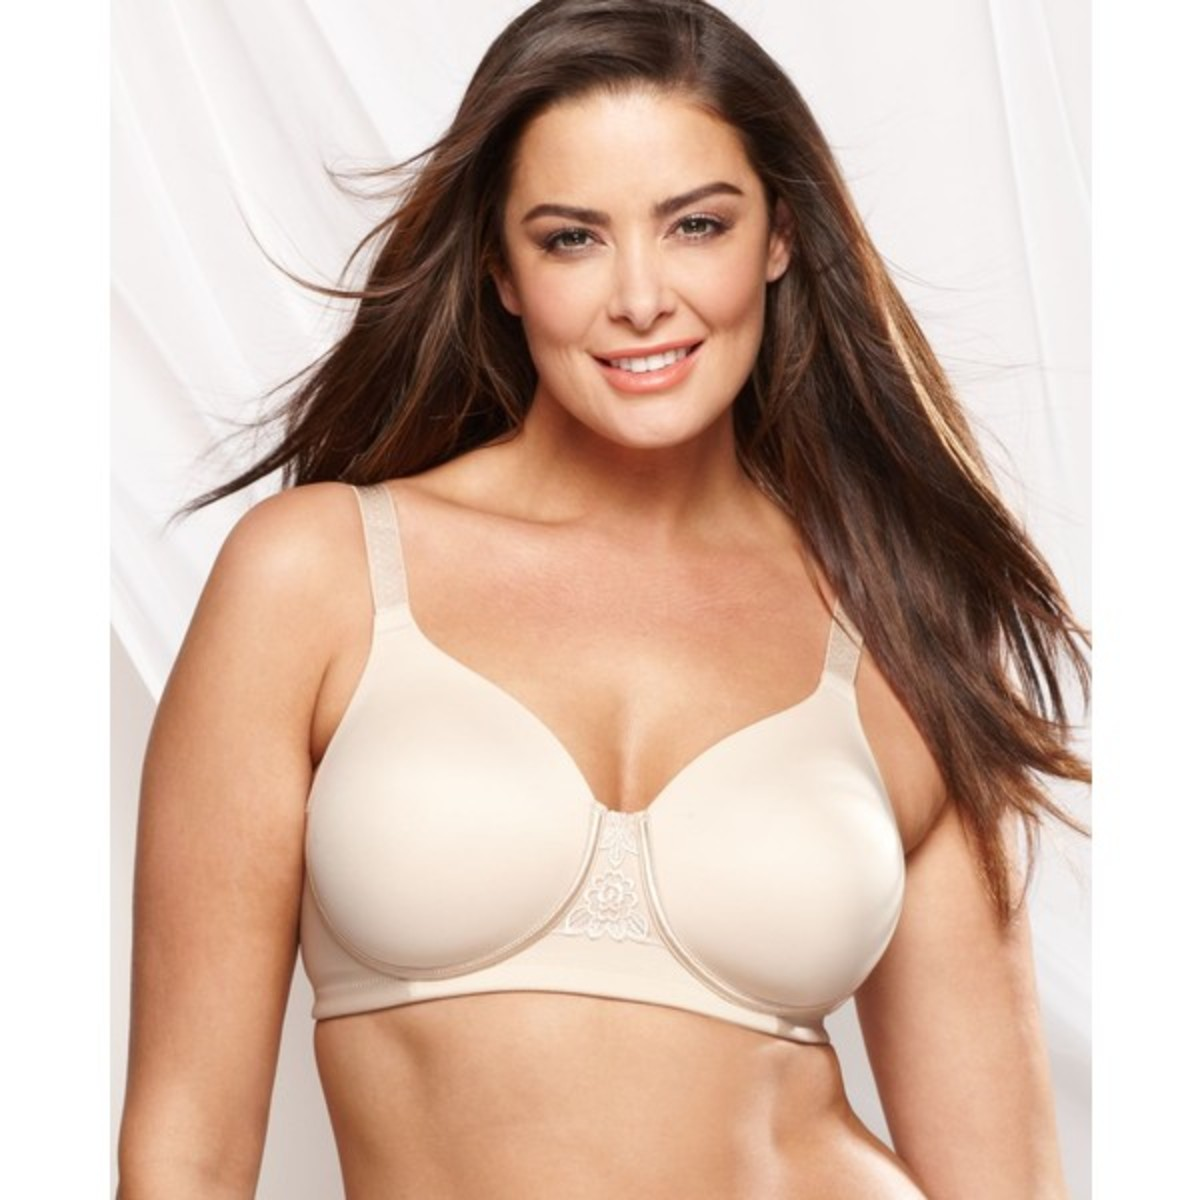 5 Reviews of the Best Minimizer Bra With Lift or Strapless